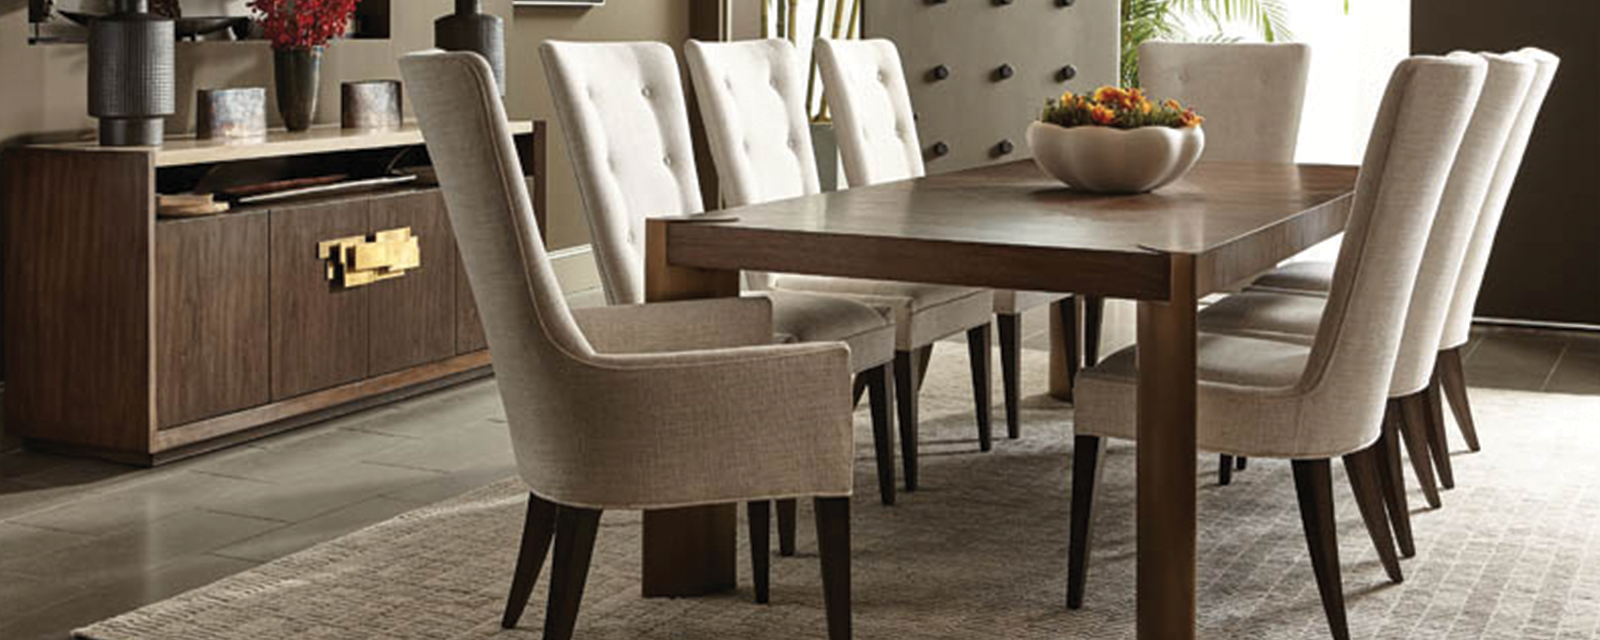 Finding The Right Dining Table Set in Calgary For Your Mom